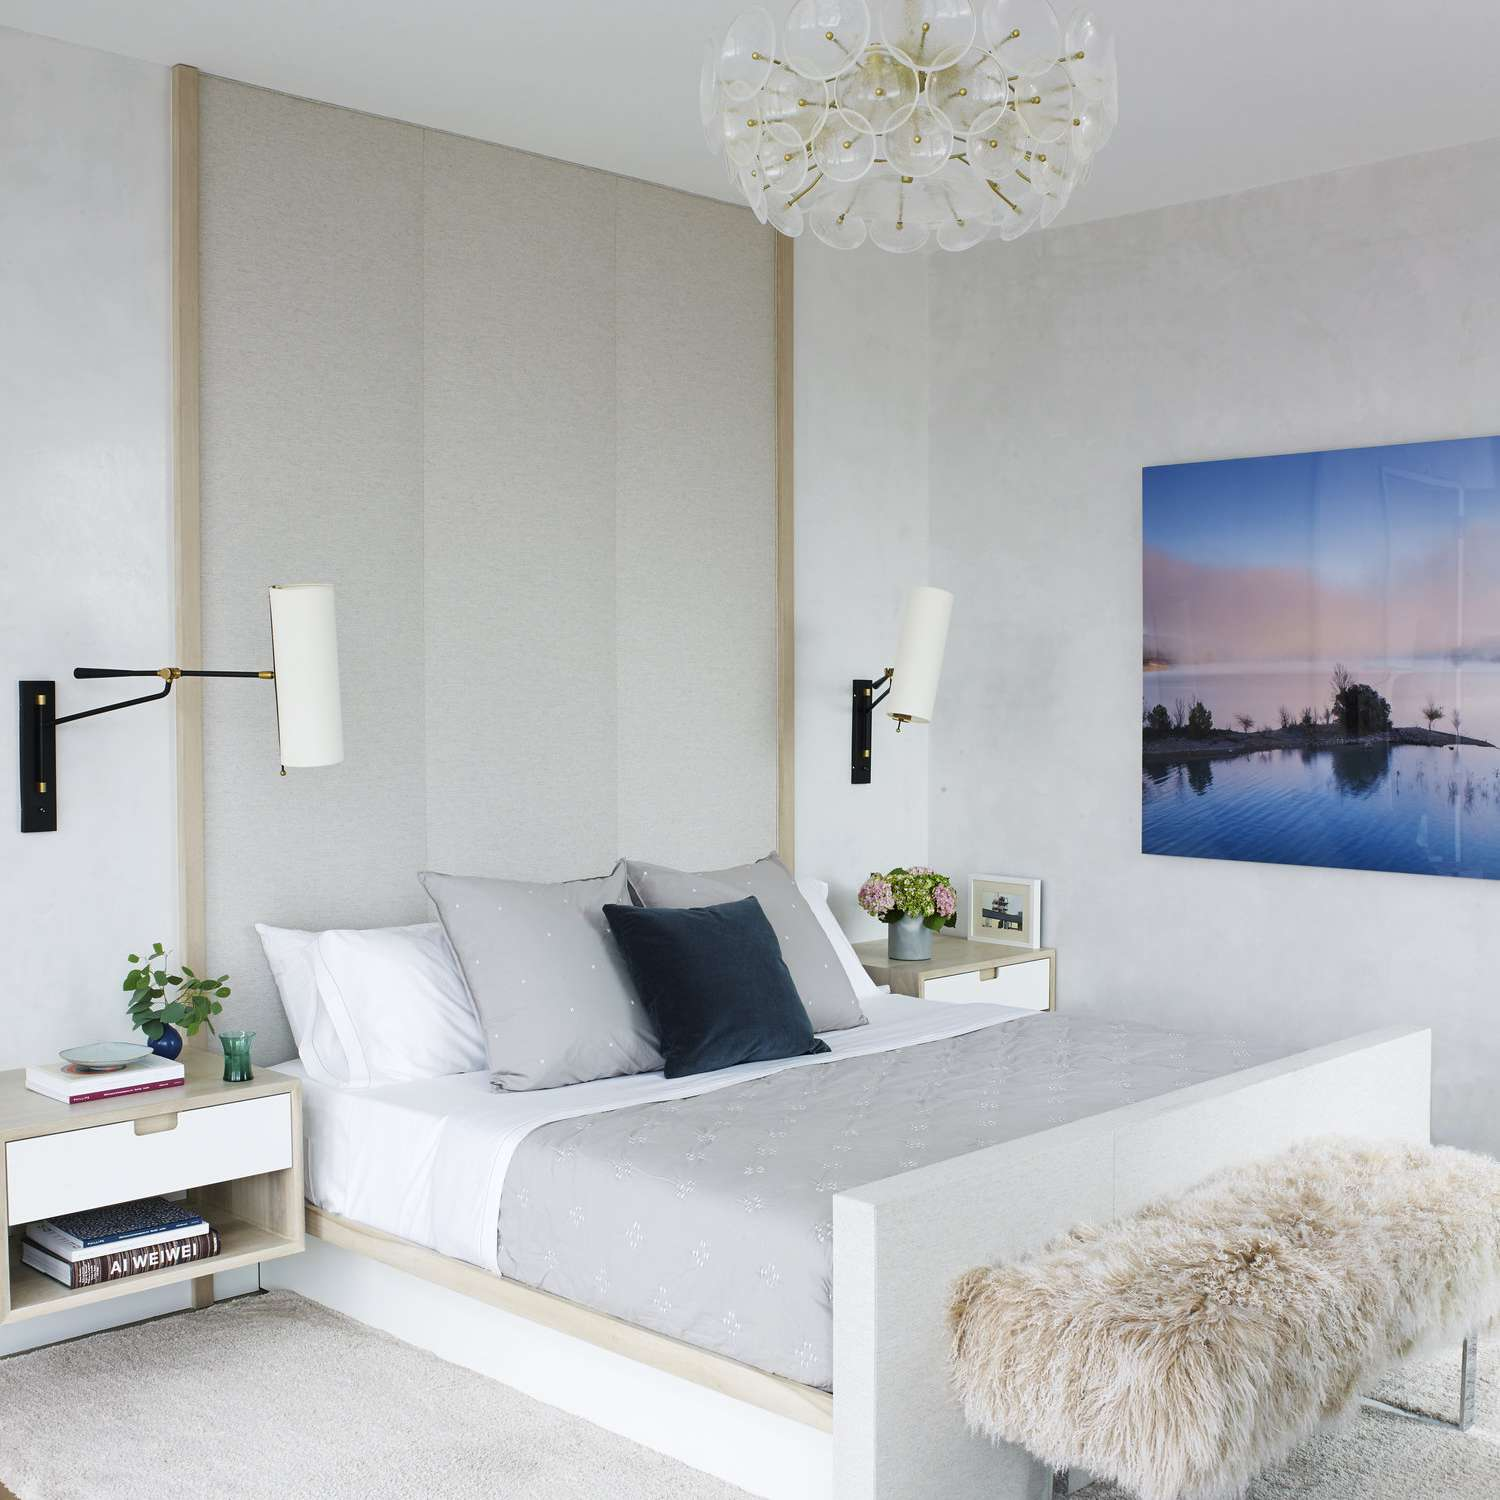 21 Minimalist Bedroom Ideas That Will Inspire You to Declutter on Minimalist Bedroom Ideas  id=73450